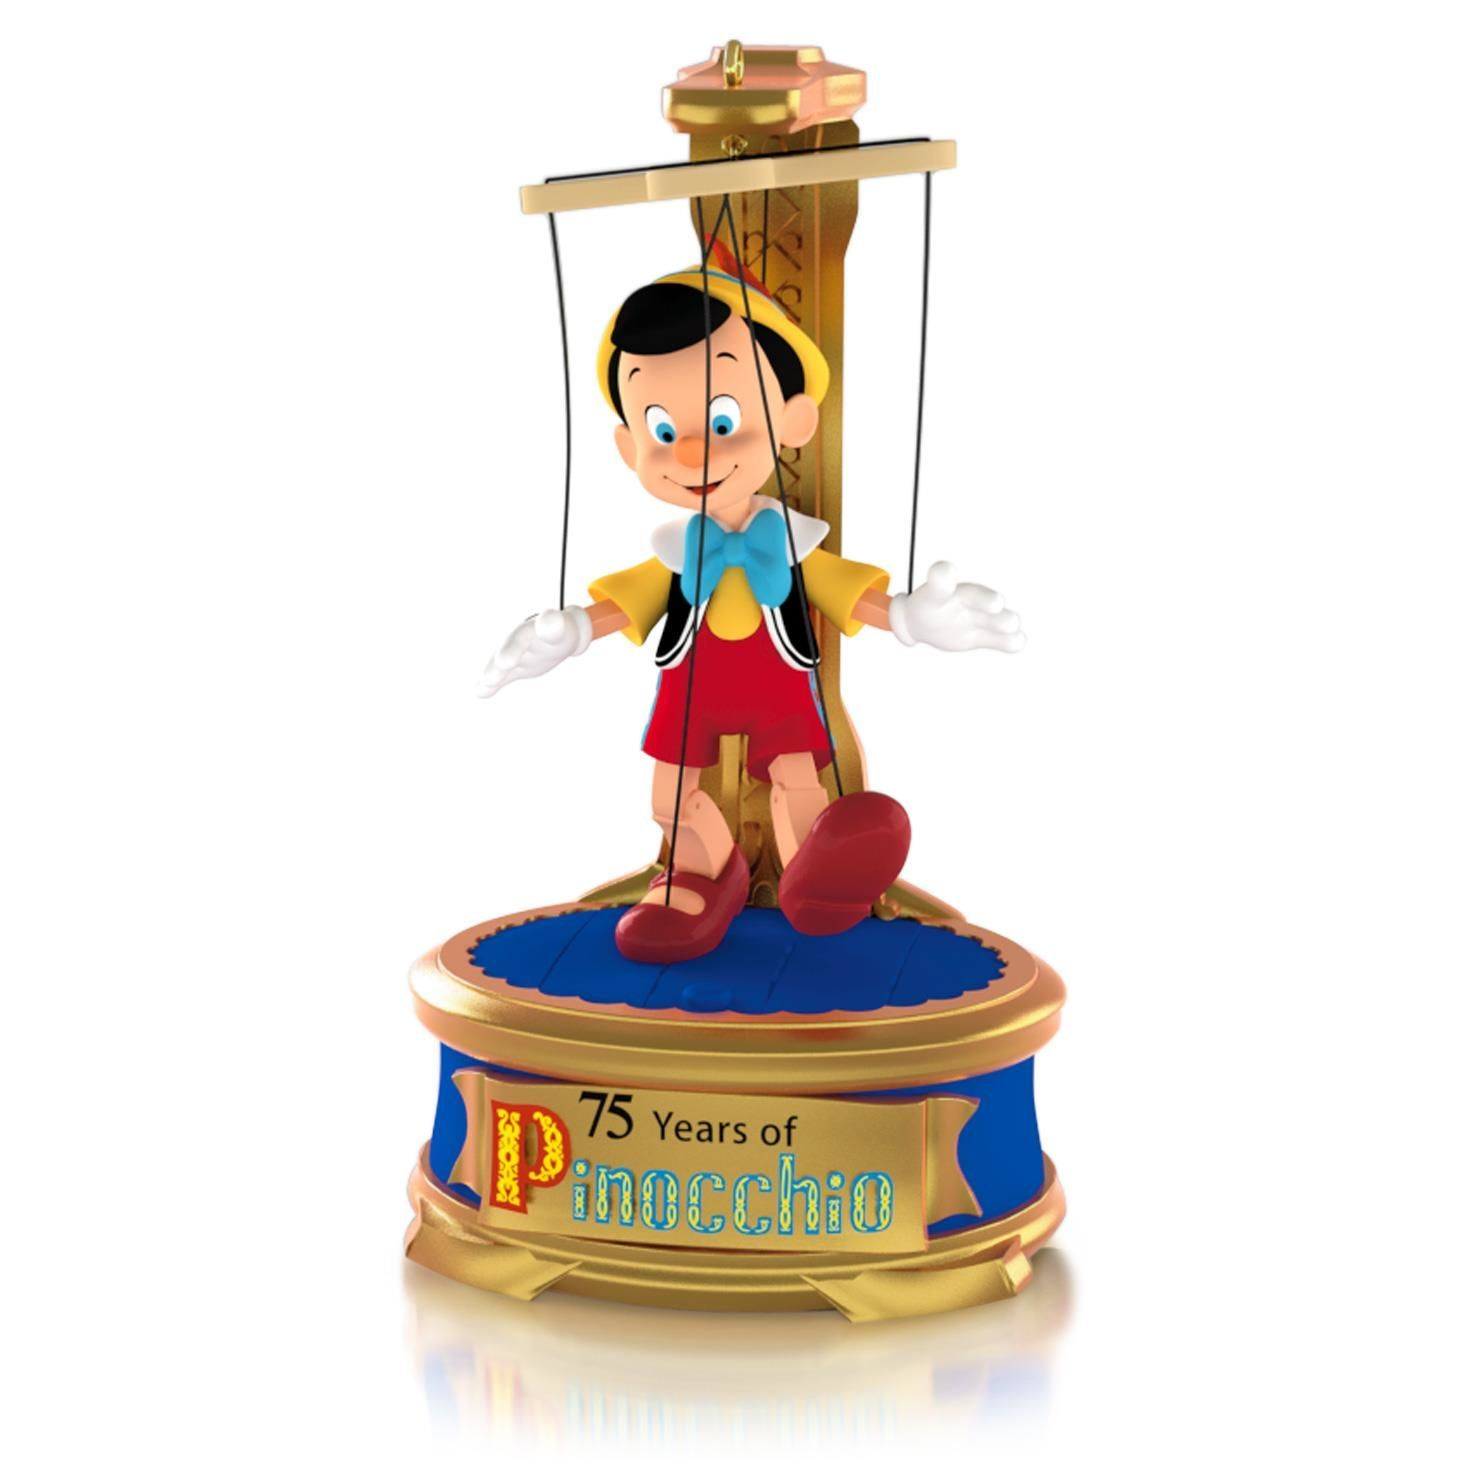 Disney ornament sets - Disney Dumbo 75th Anniversary Musical Ornament